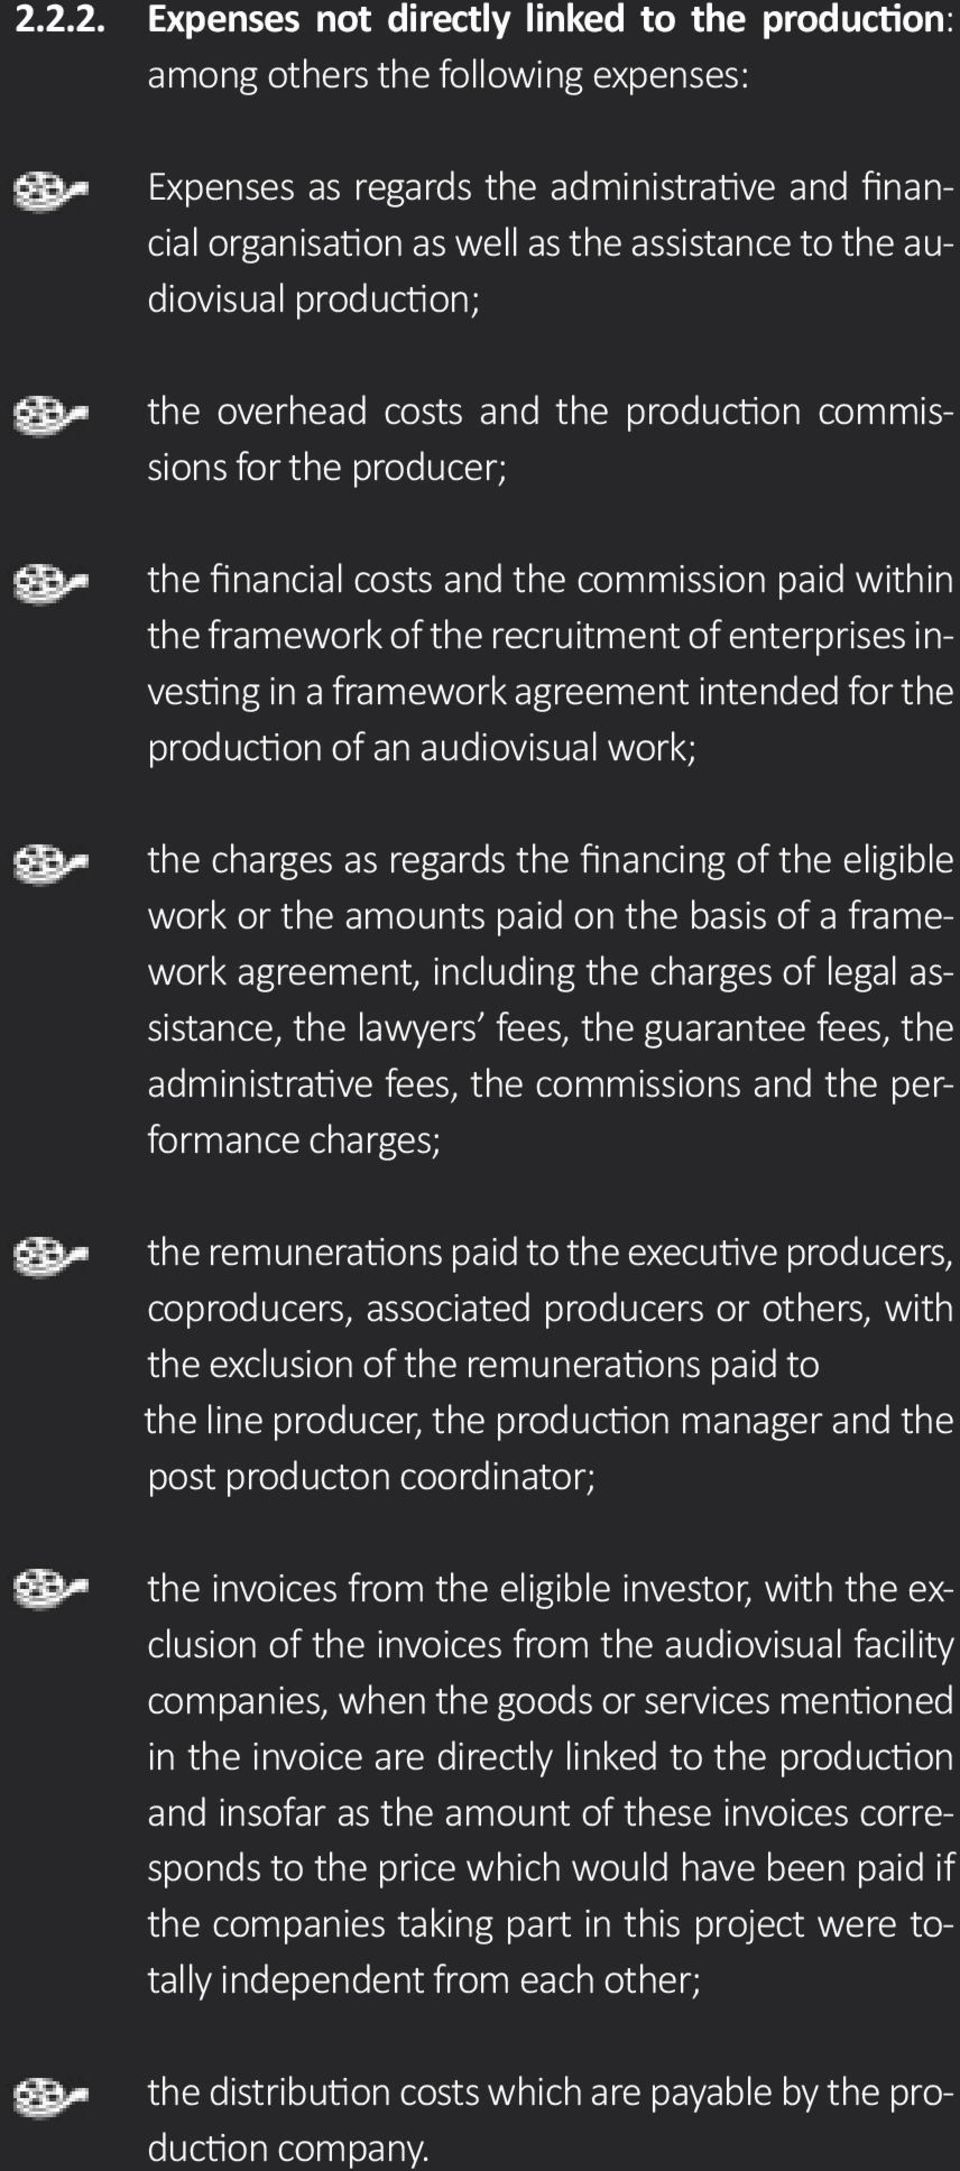 investing in a framework agreement intended for the production of an audiovisual work; the charges as regards the financing of the eligible work or the amounts paid on the basis of a framework